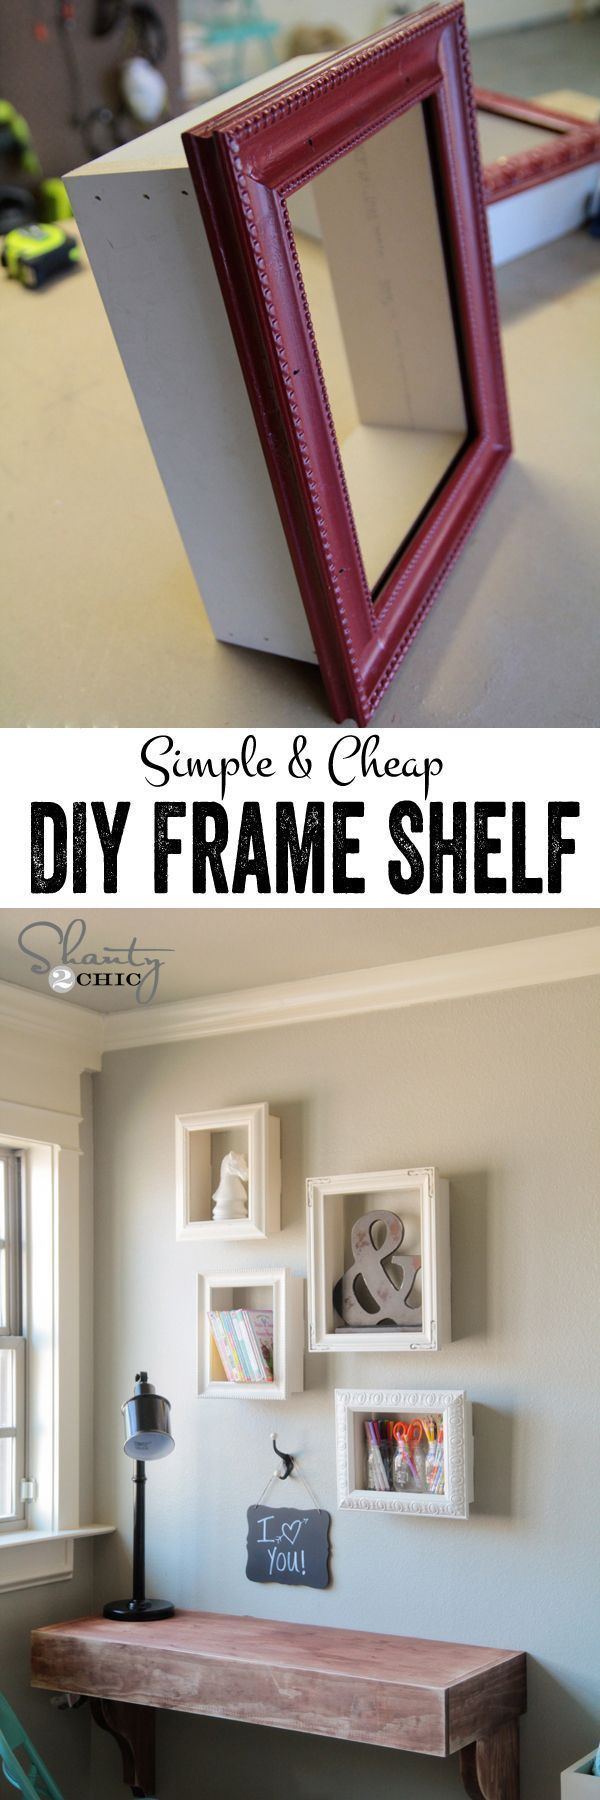 118 best diy gallery wall ideas images on pinterest picture wall diy frames for wall decor turn the simple frames from the local thrift store into these expensive frames by attaching wood to all sides and hang on wall solutioingenieria Choice Image